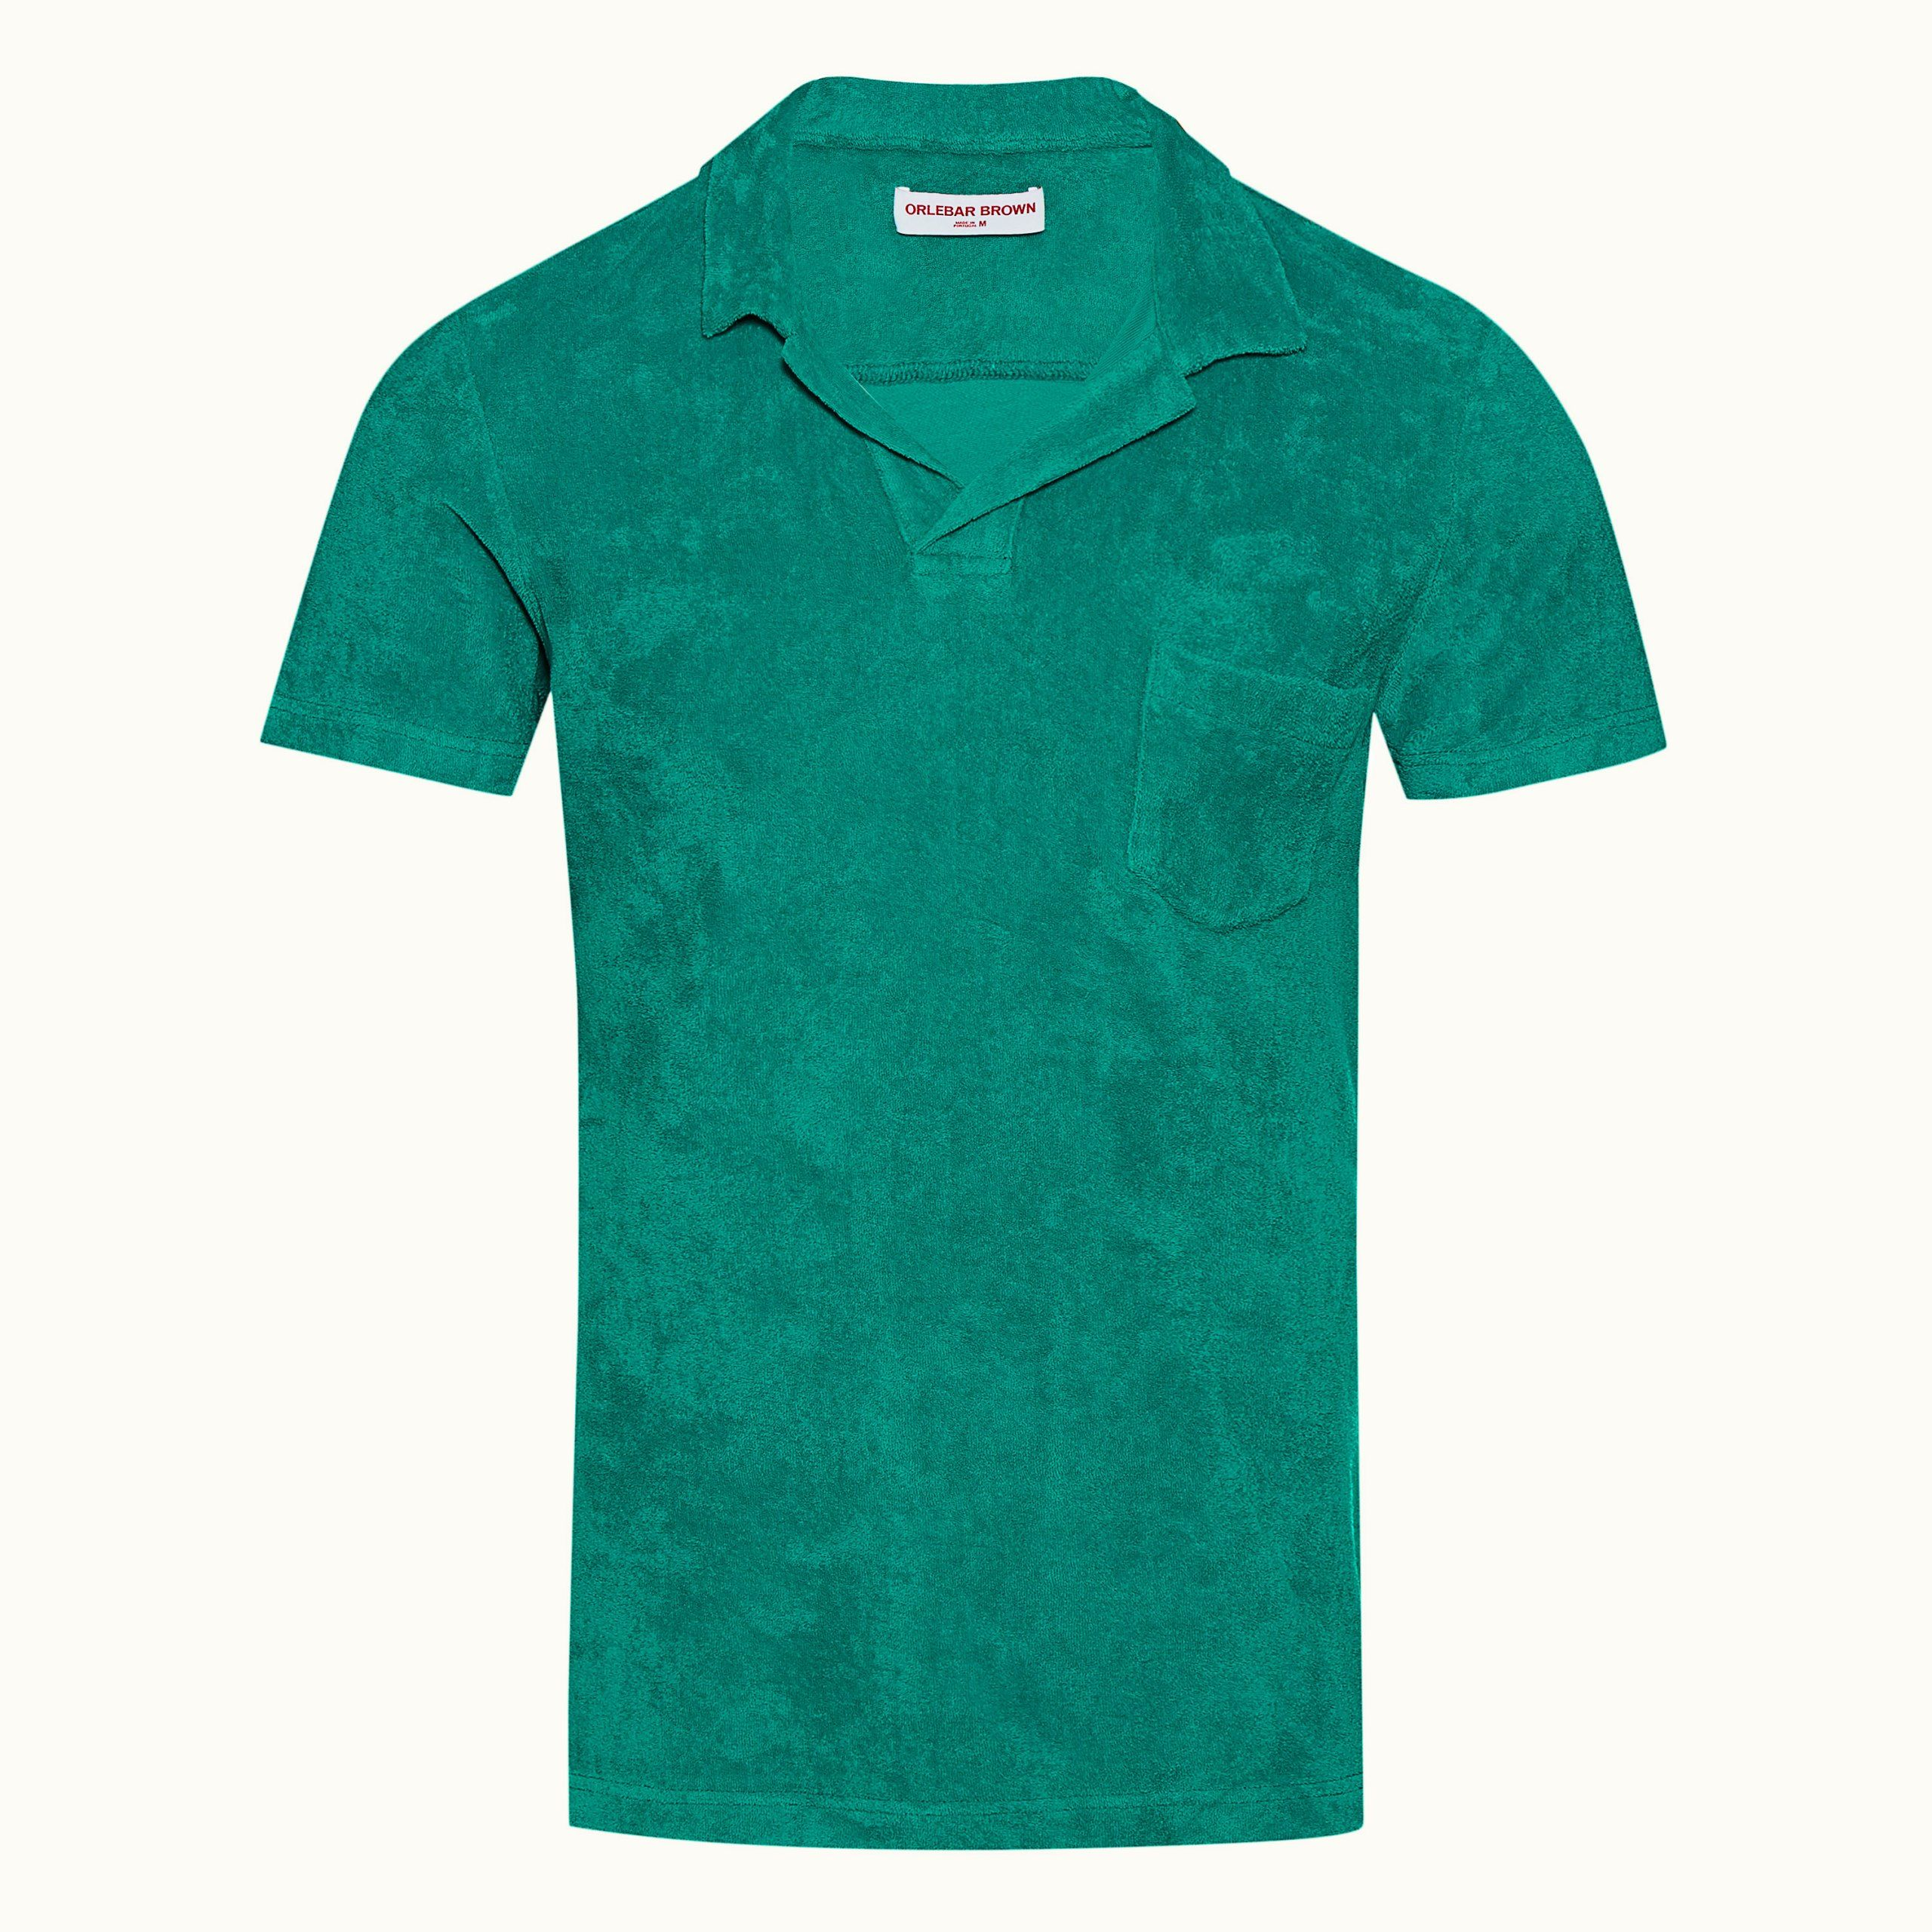 ORLEBAR BROWN TERRY BRIGHT EMERALD 273715 FRONT